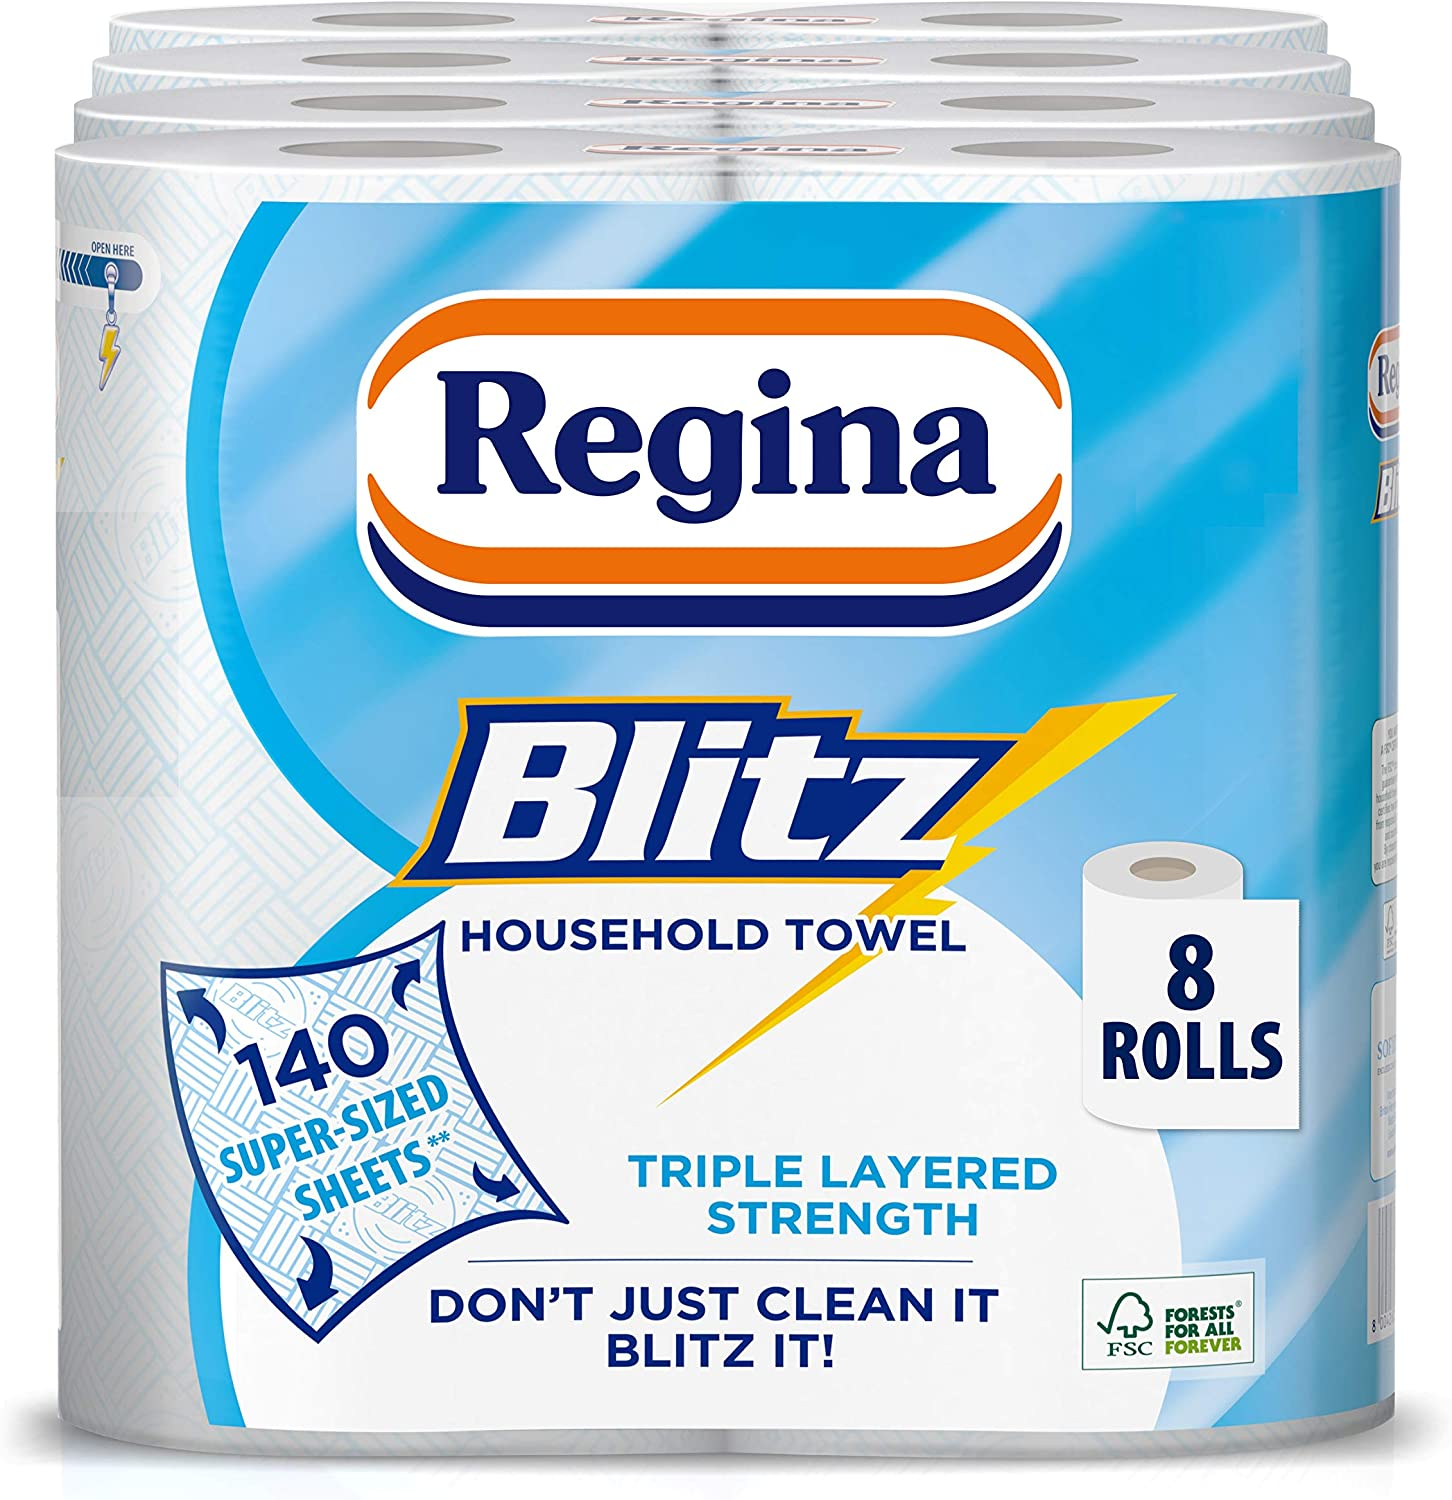 48 Rolls Blitz Kitchen Regina Paper Towels//Sheets Extra Large Roll 3ply Super Strong /& Absorbent Paper